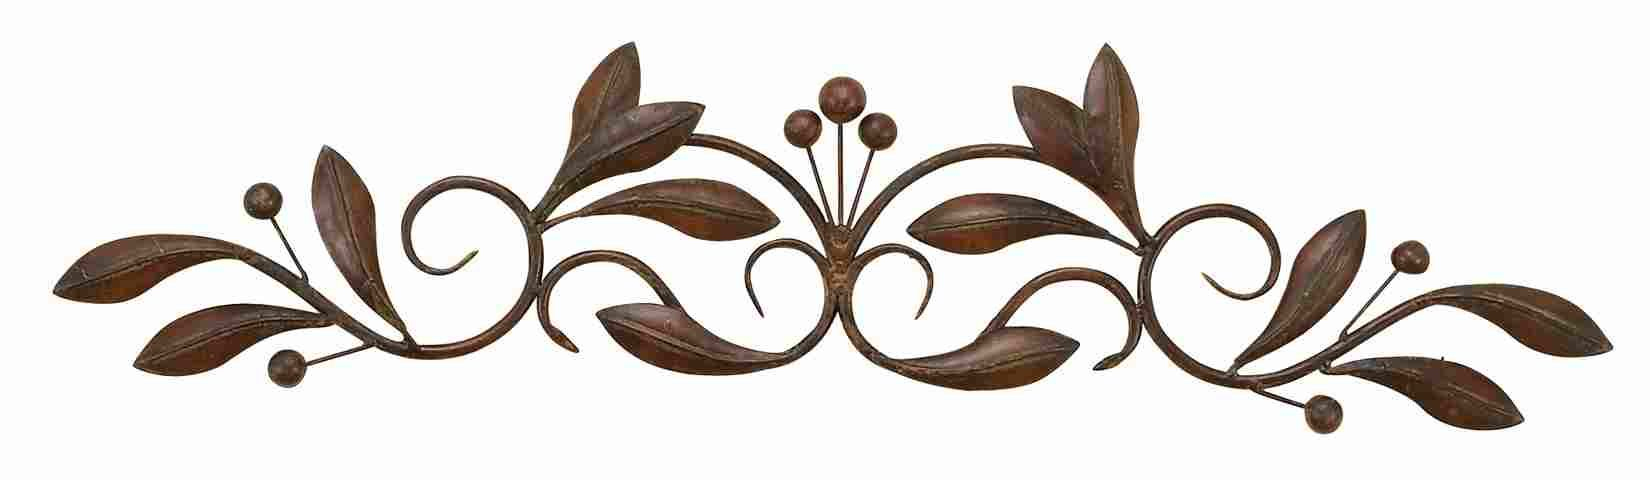 Rectangle Metal Scroll Wall Art Brushed Relief Small Buds Vines Nmd99545